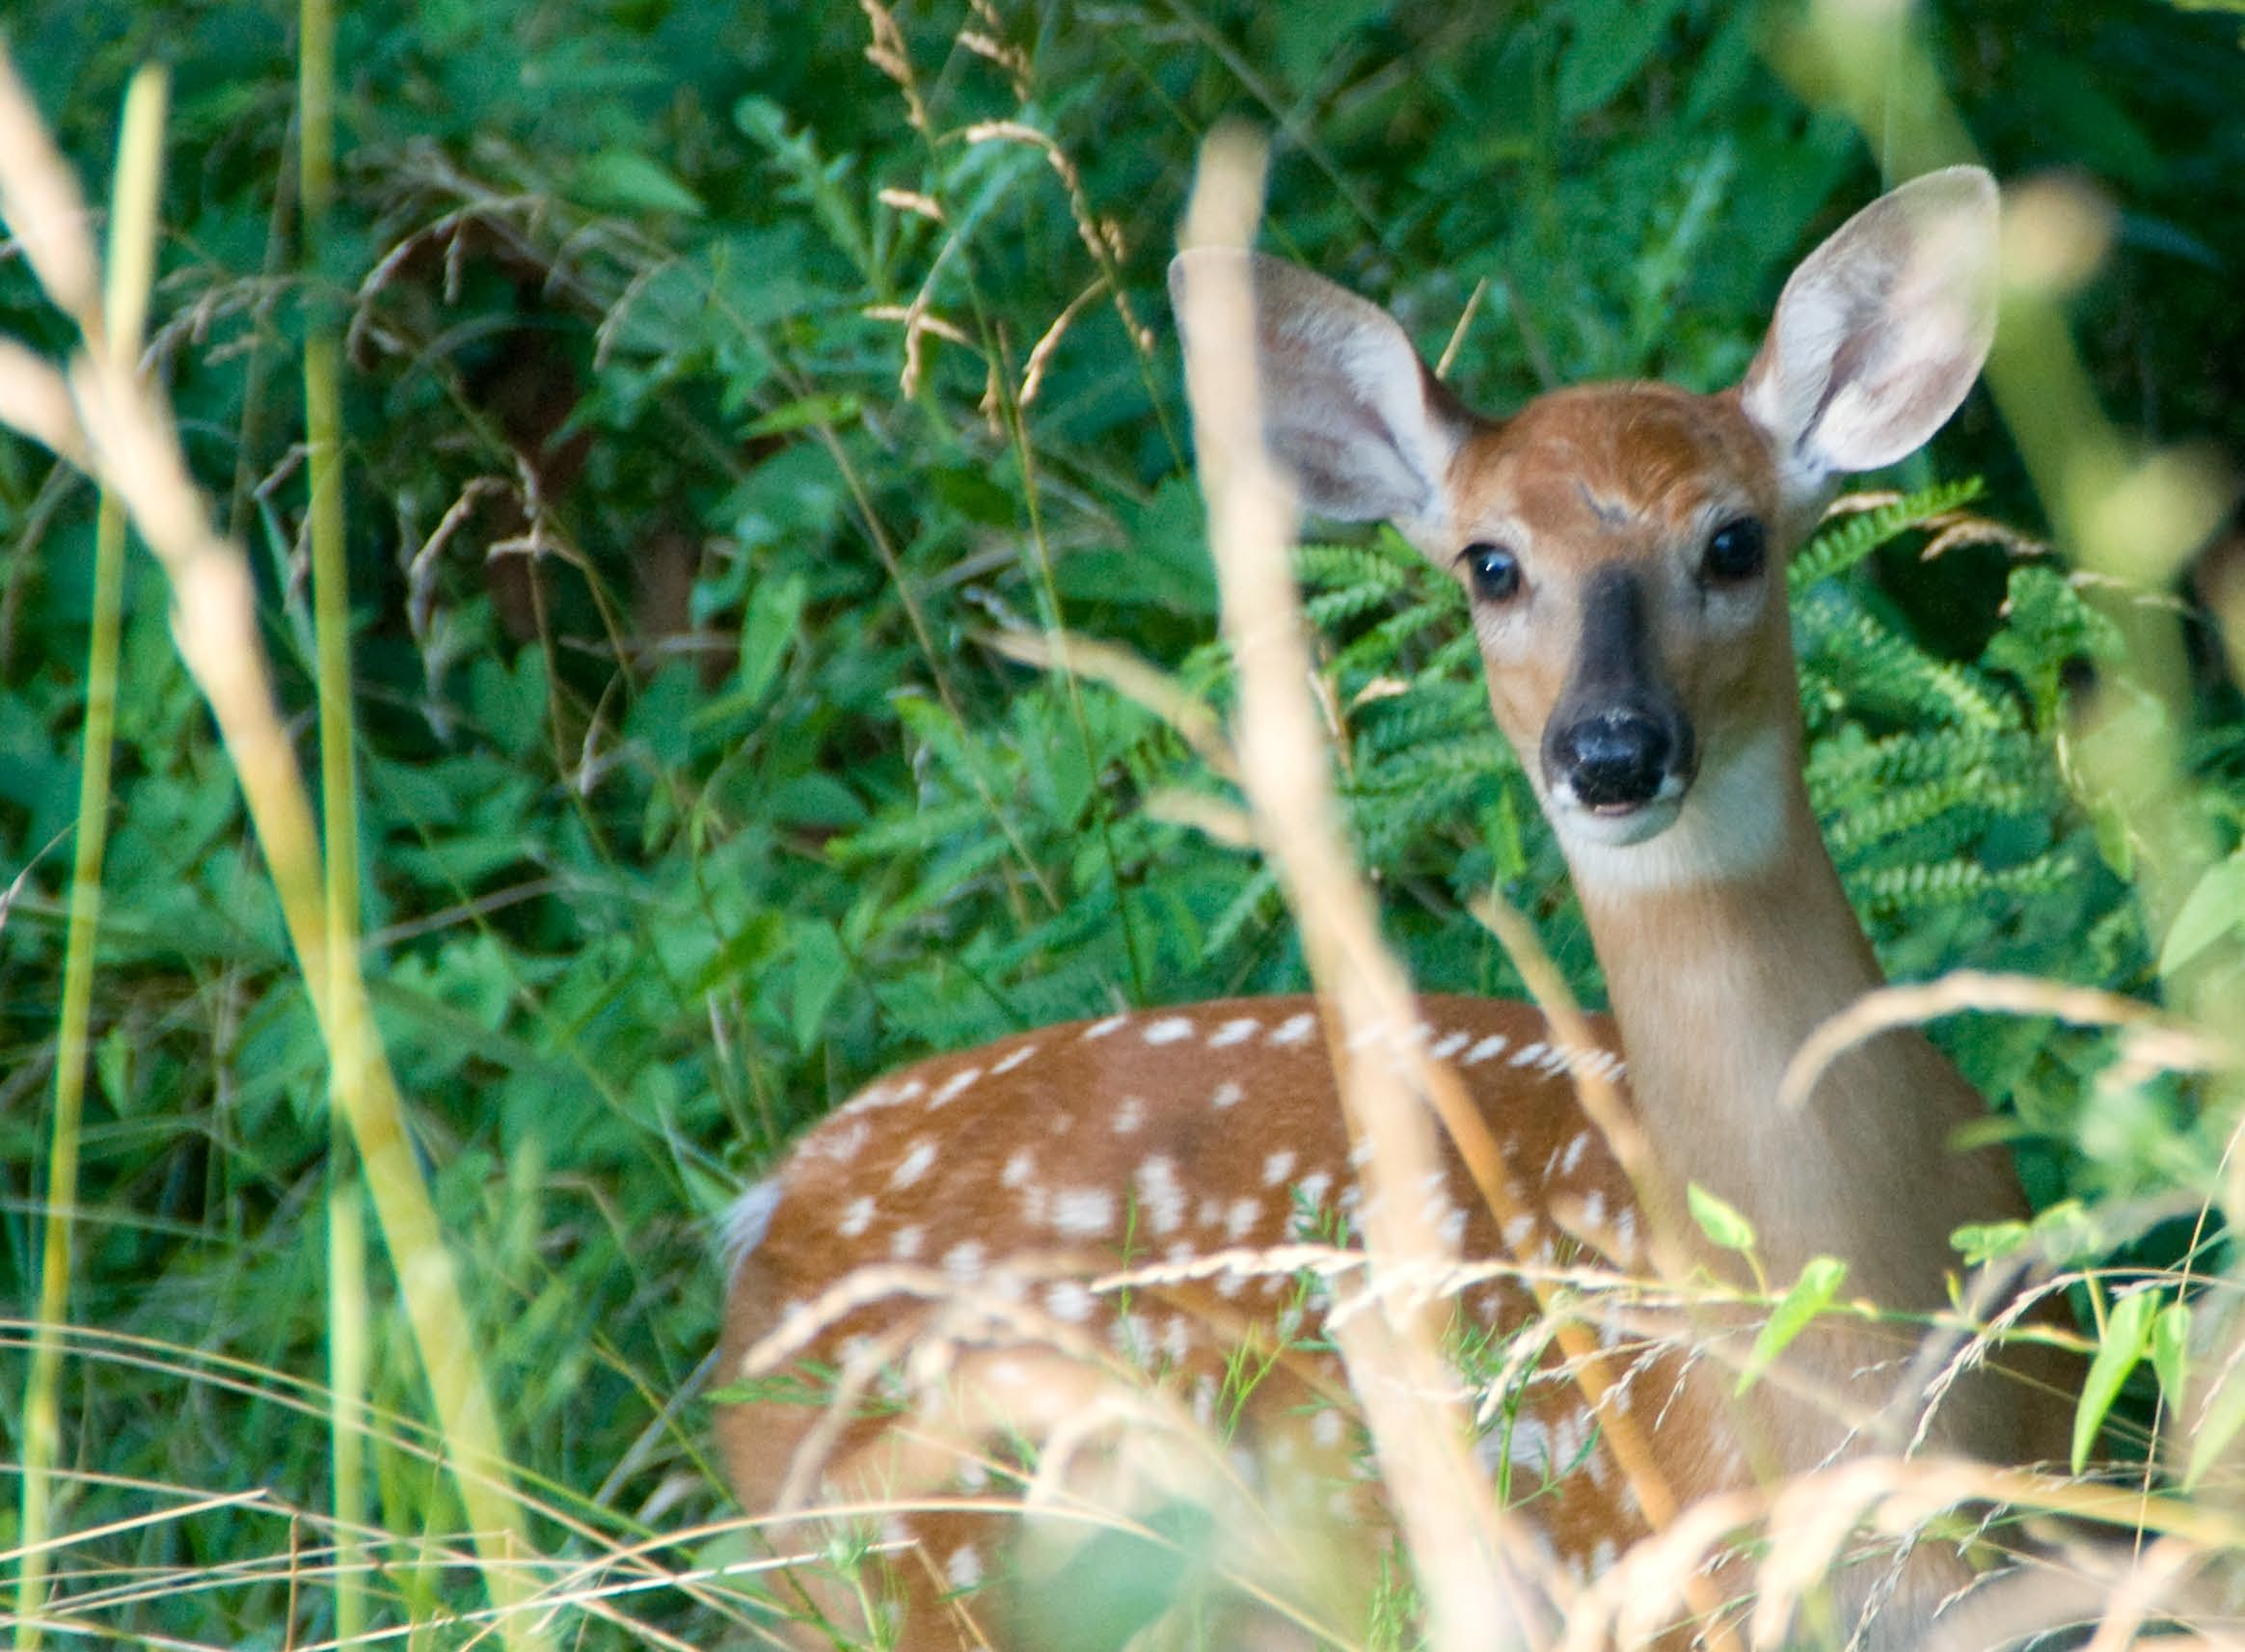 Kirkwood Inn   Guests often spot wildlife when exploring wooded walking paths.  A scenic, yet convenient retreat.